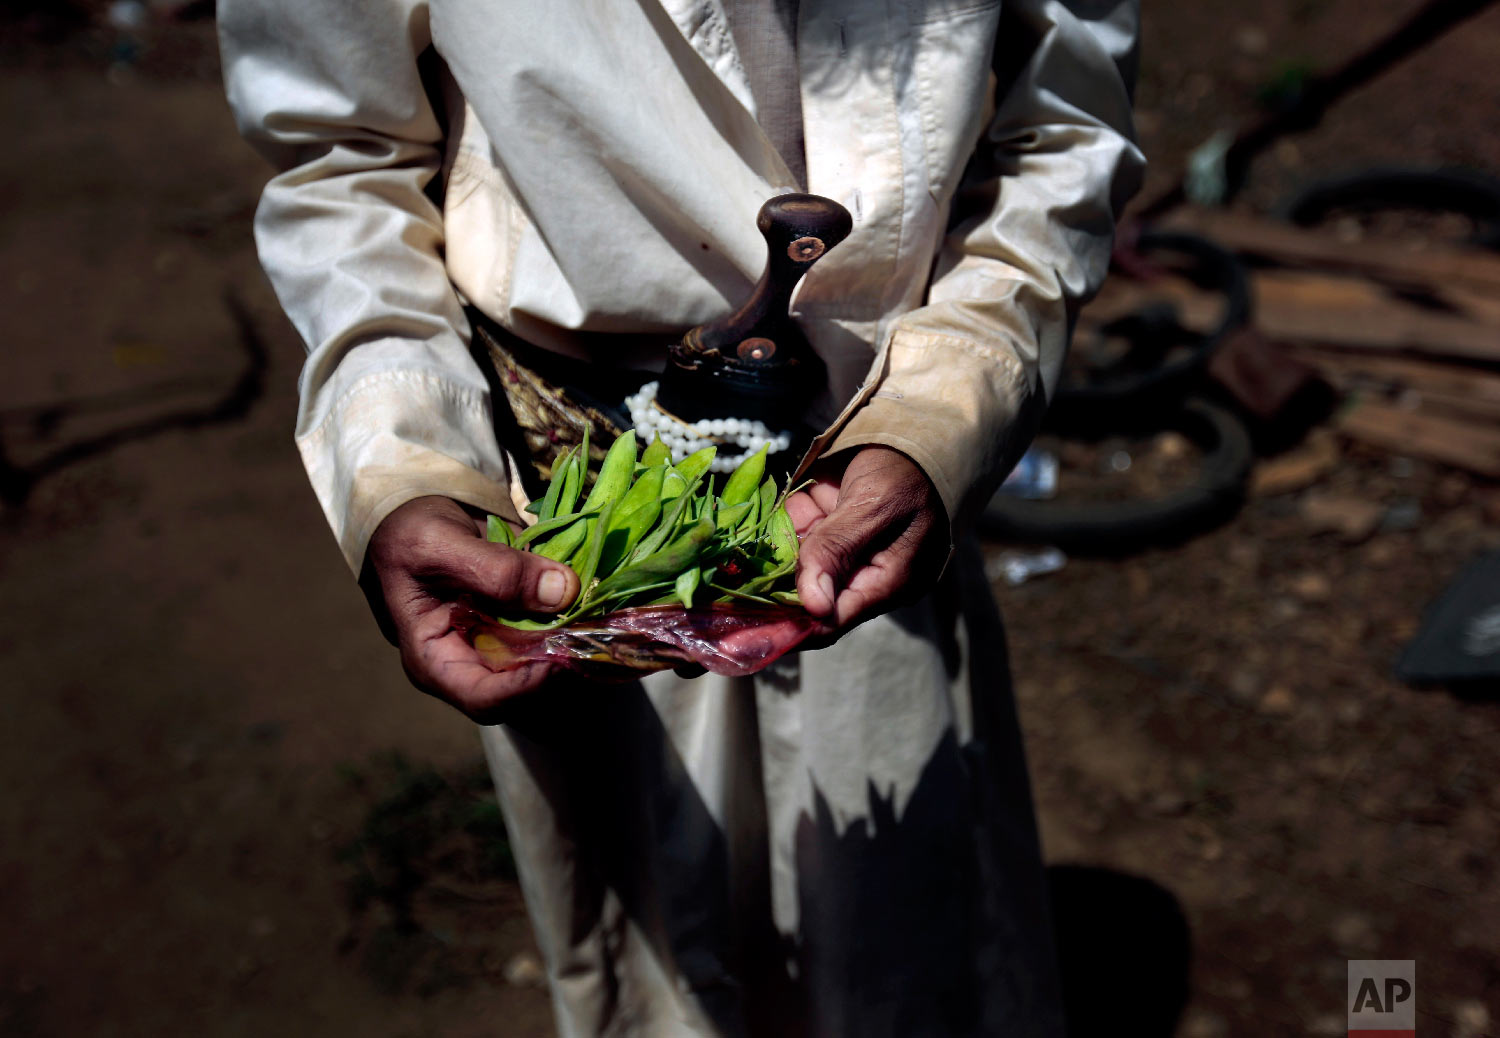 A man holds Halas before cooking for his children, a climbing vine of green leaves, in Aslam, Hajjah, Yemen. (AP Photo/Hani Mohammed)